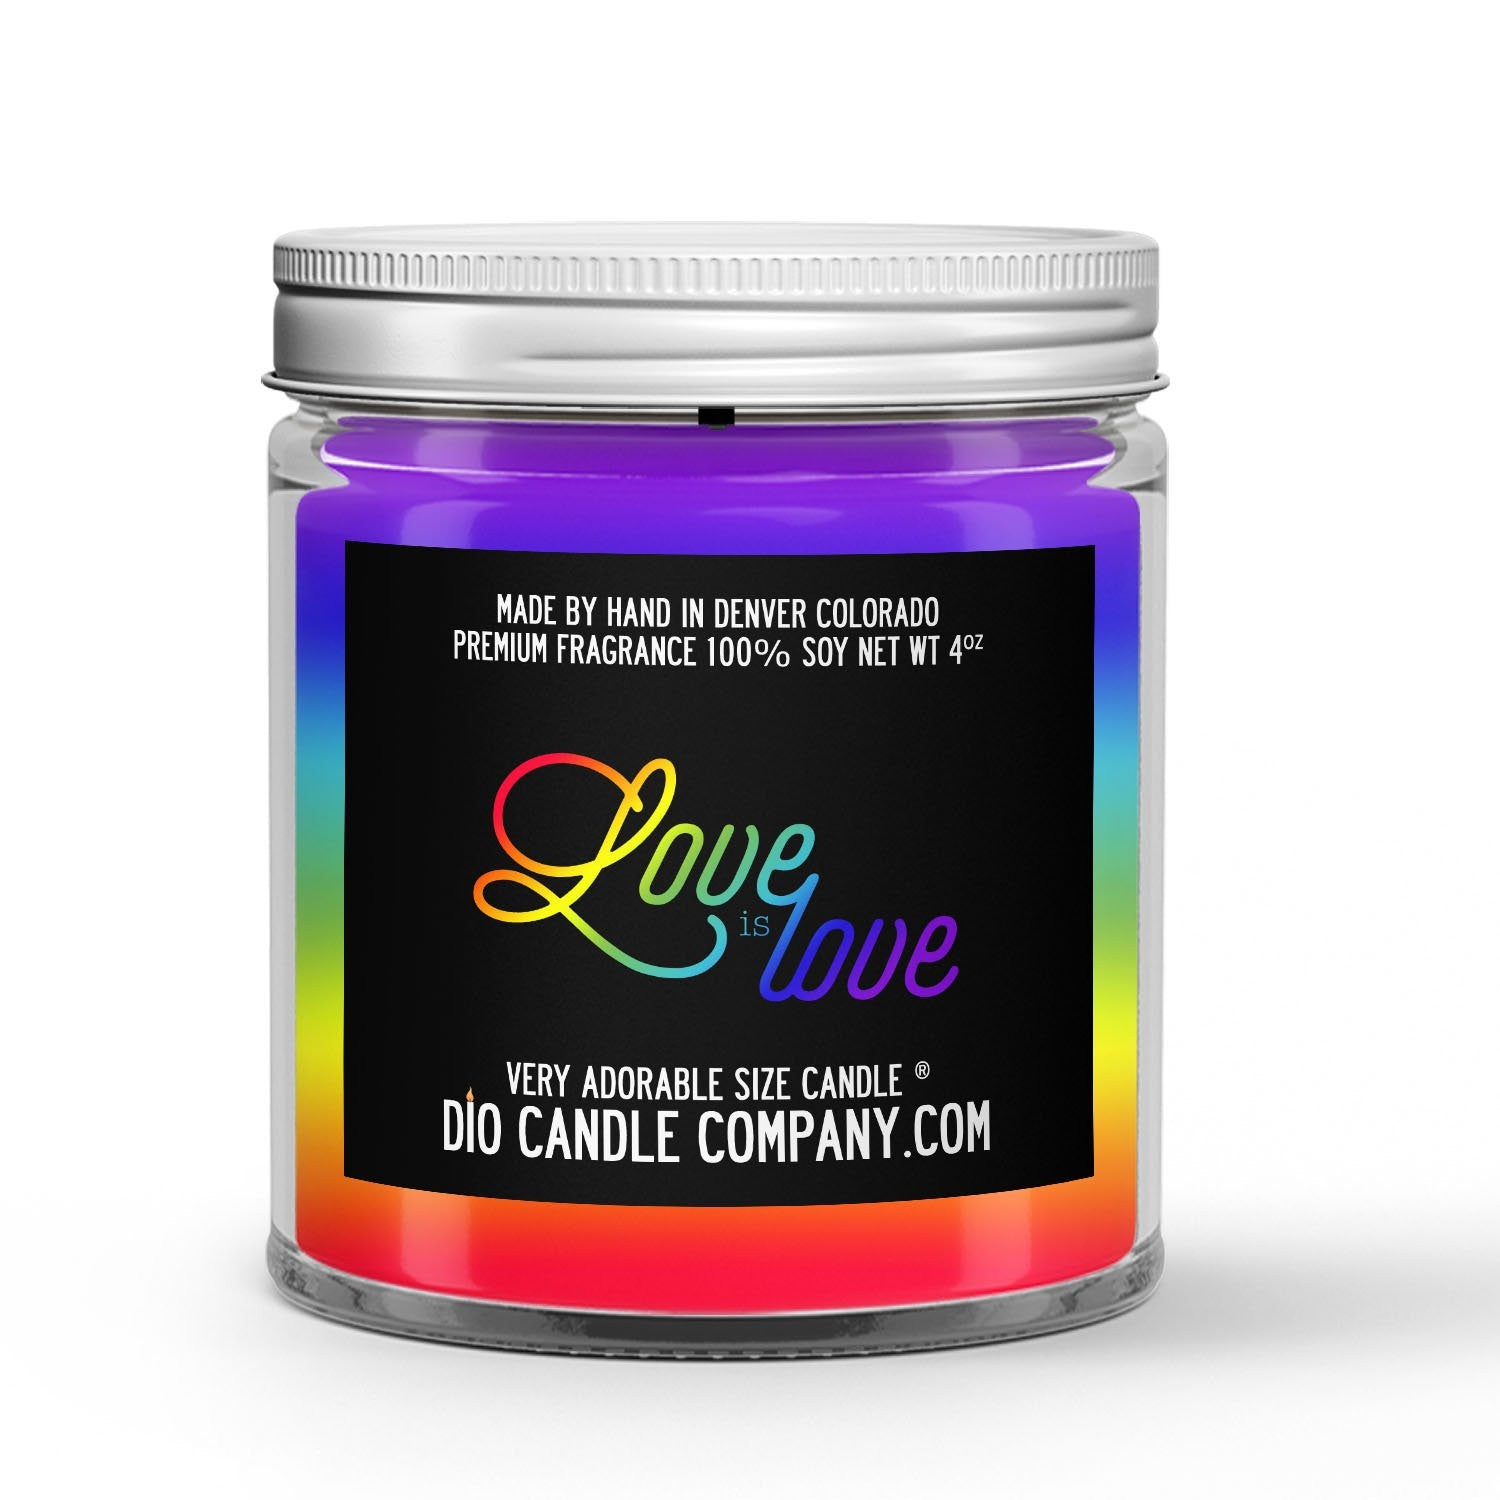 Love is Love Candle - Powdered Sugar - Sweet Cereal - 4oz Very Adorable Size Candle® - Dio Candle Company